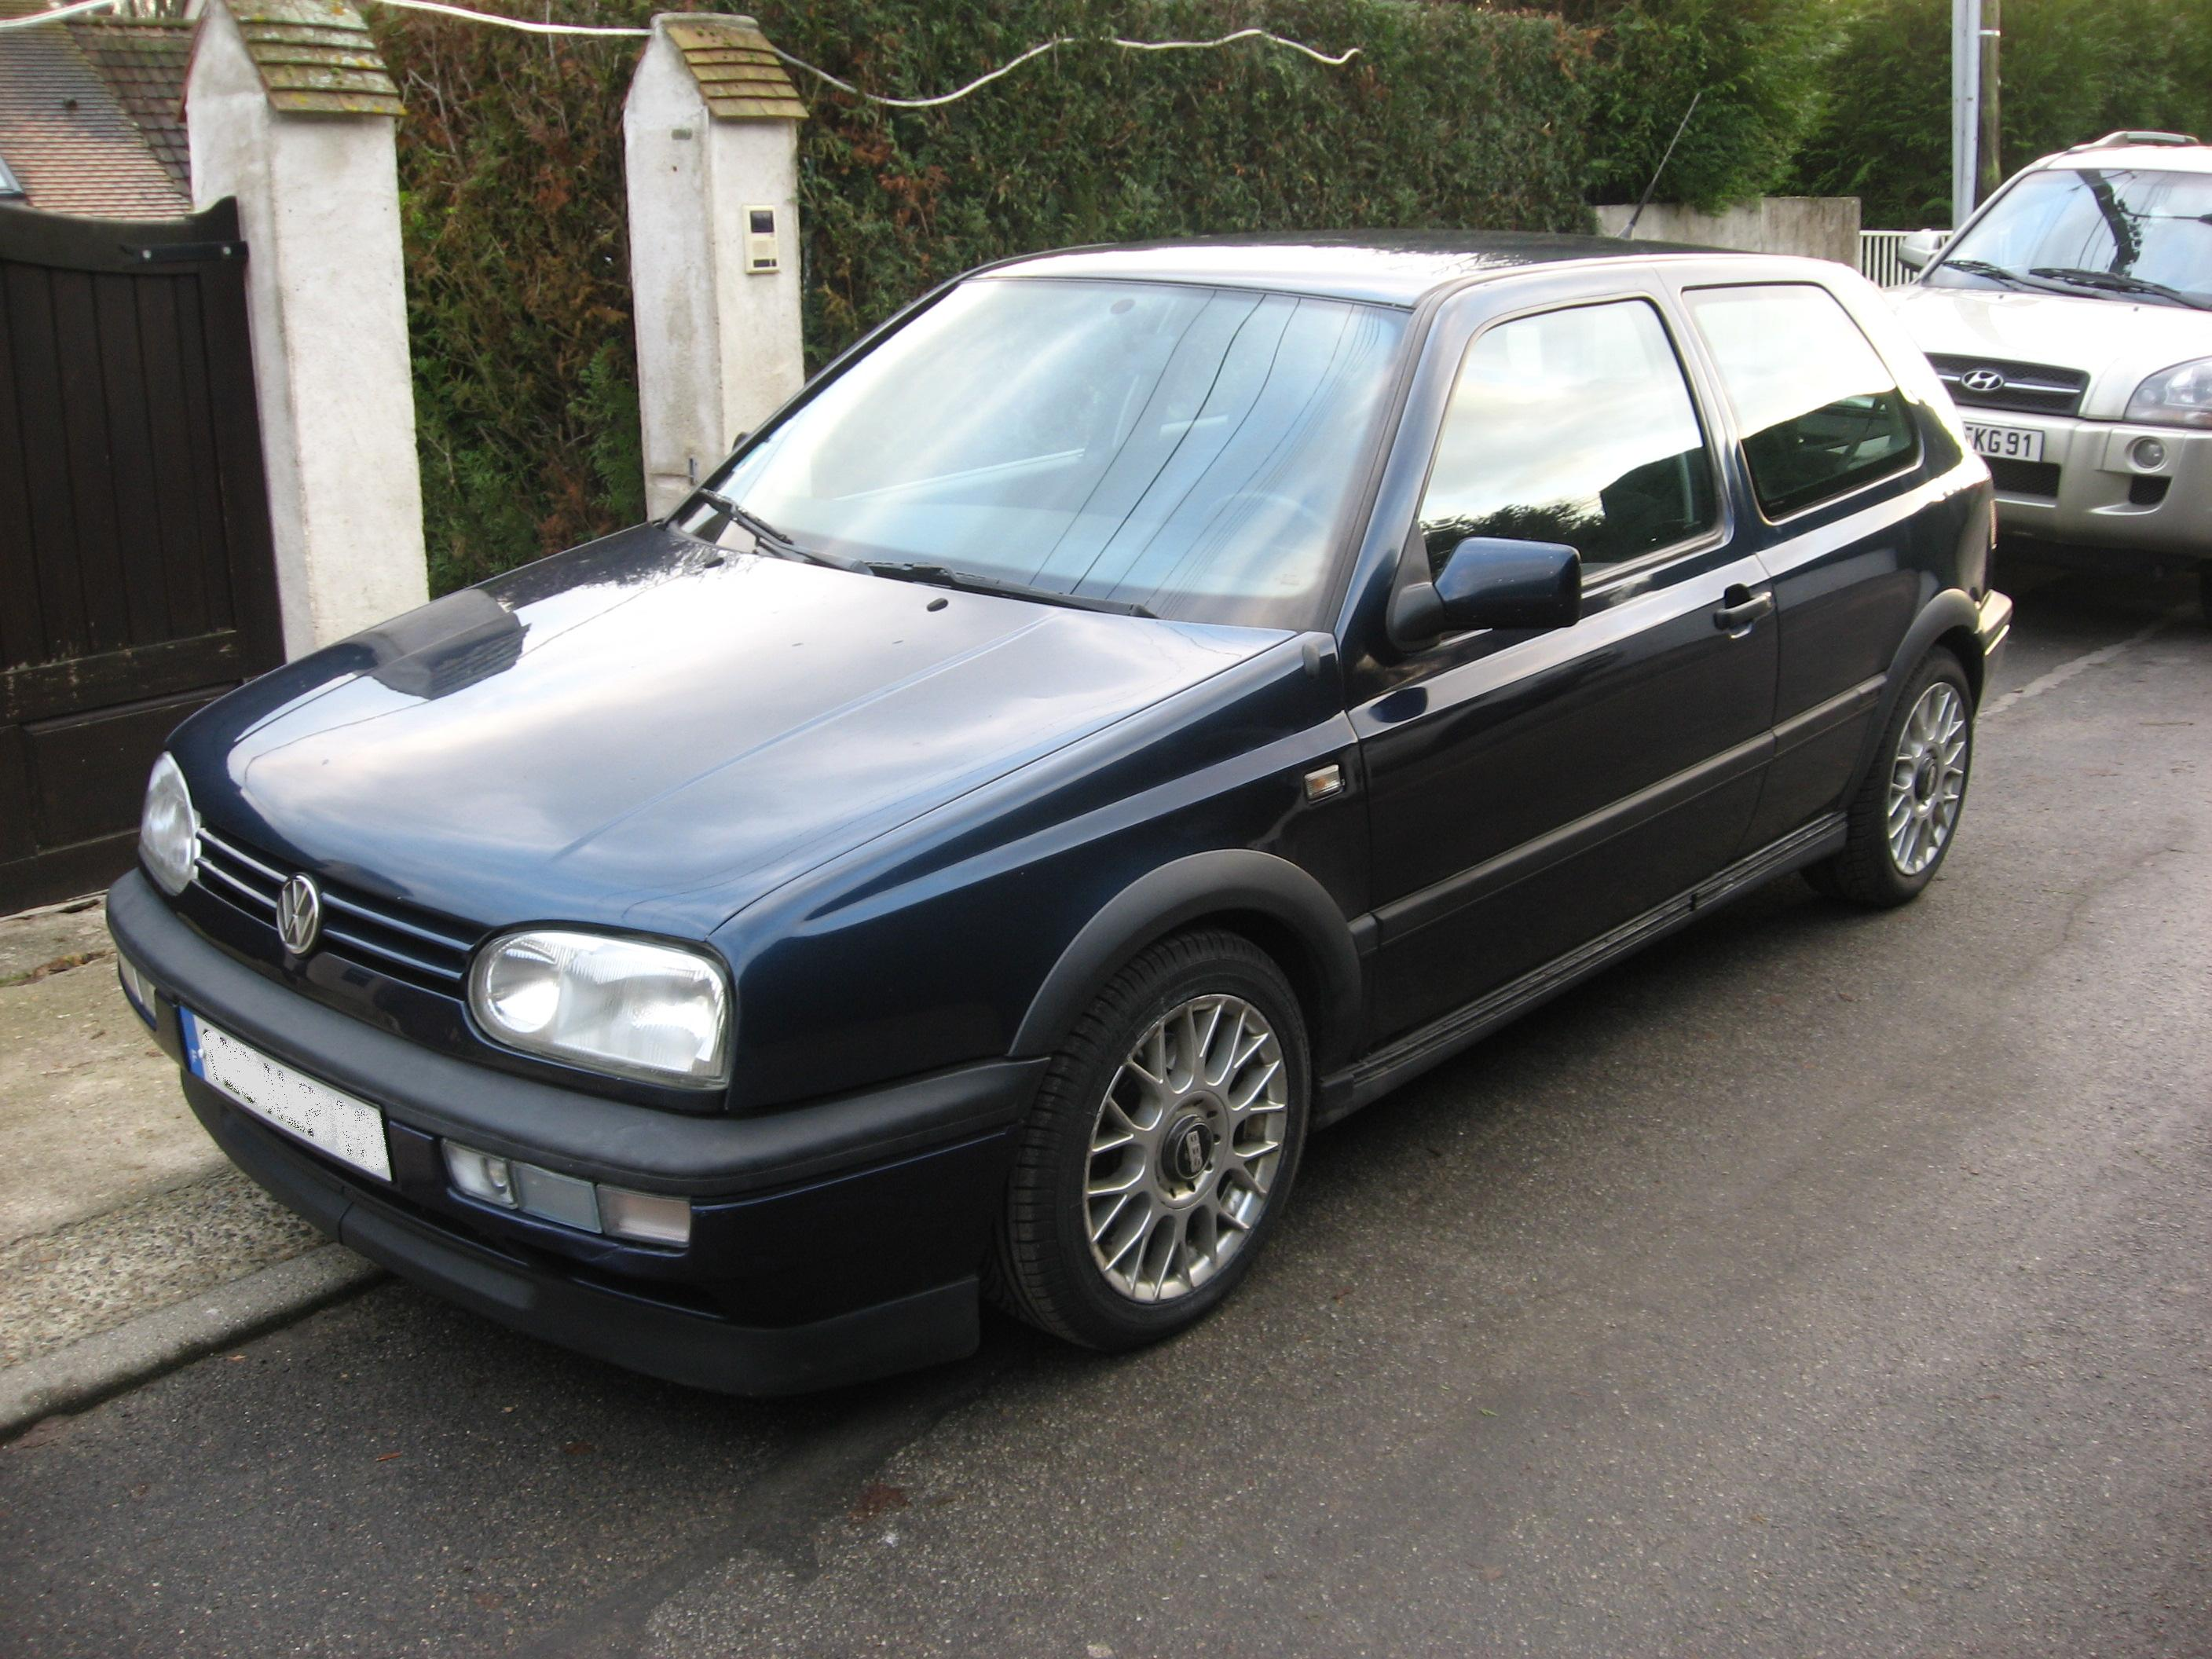 voiture occasion volkswagen golf iii de 1993 140 000 km. Black Bedroom Furniture Sets. Home Design Ideas